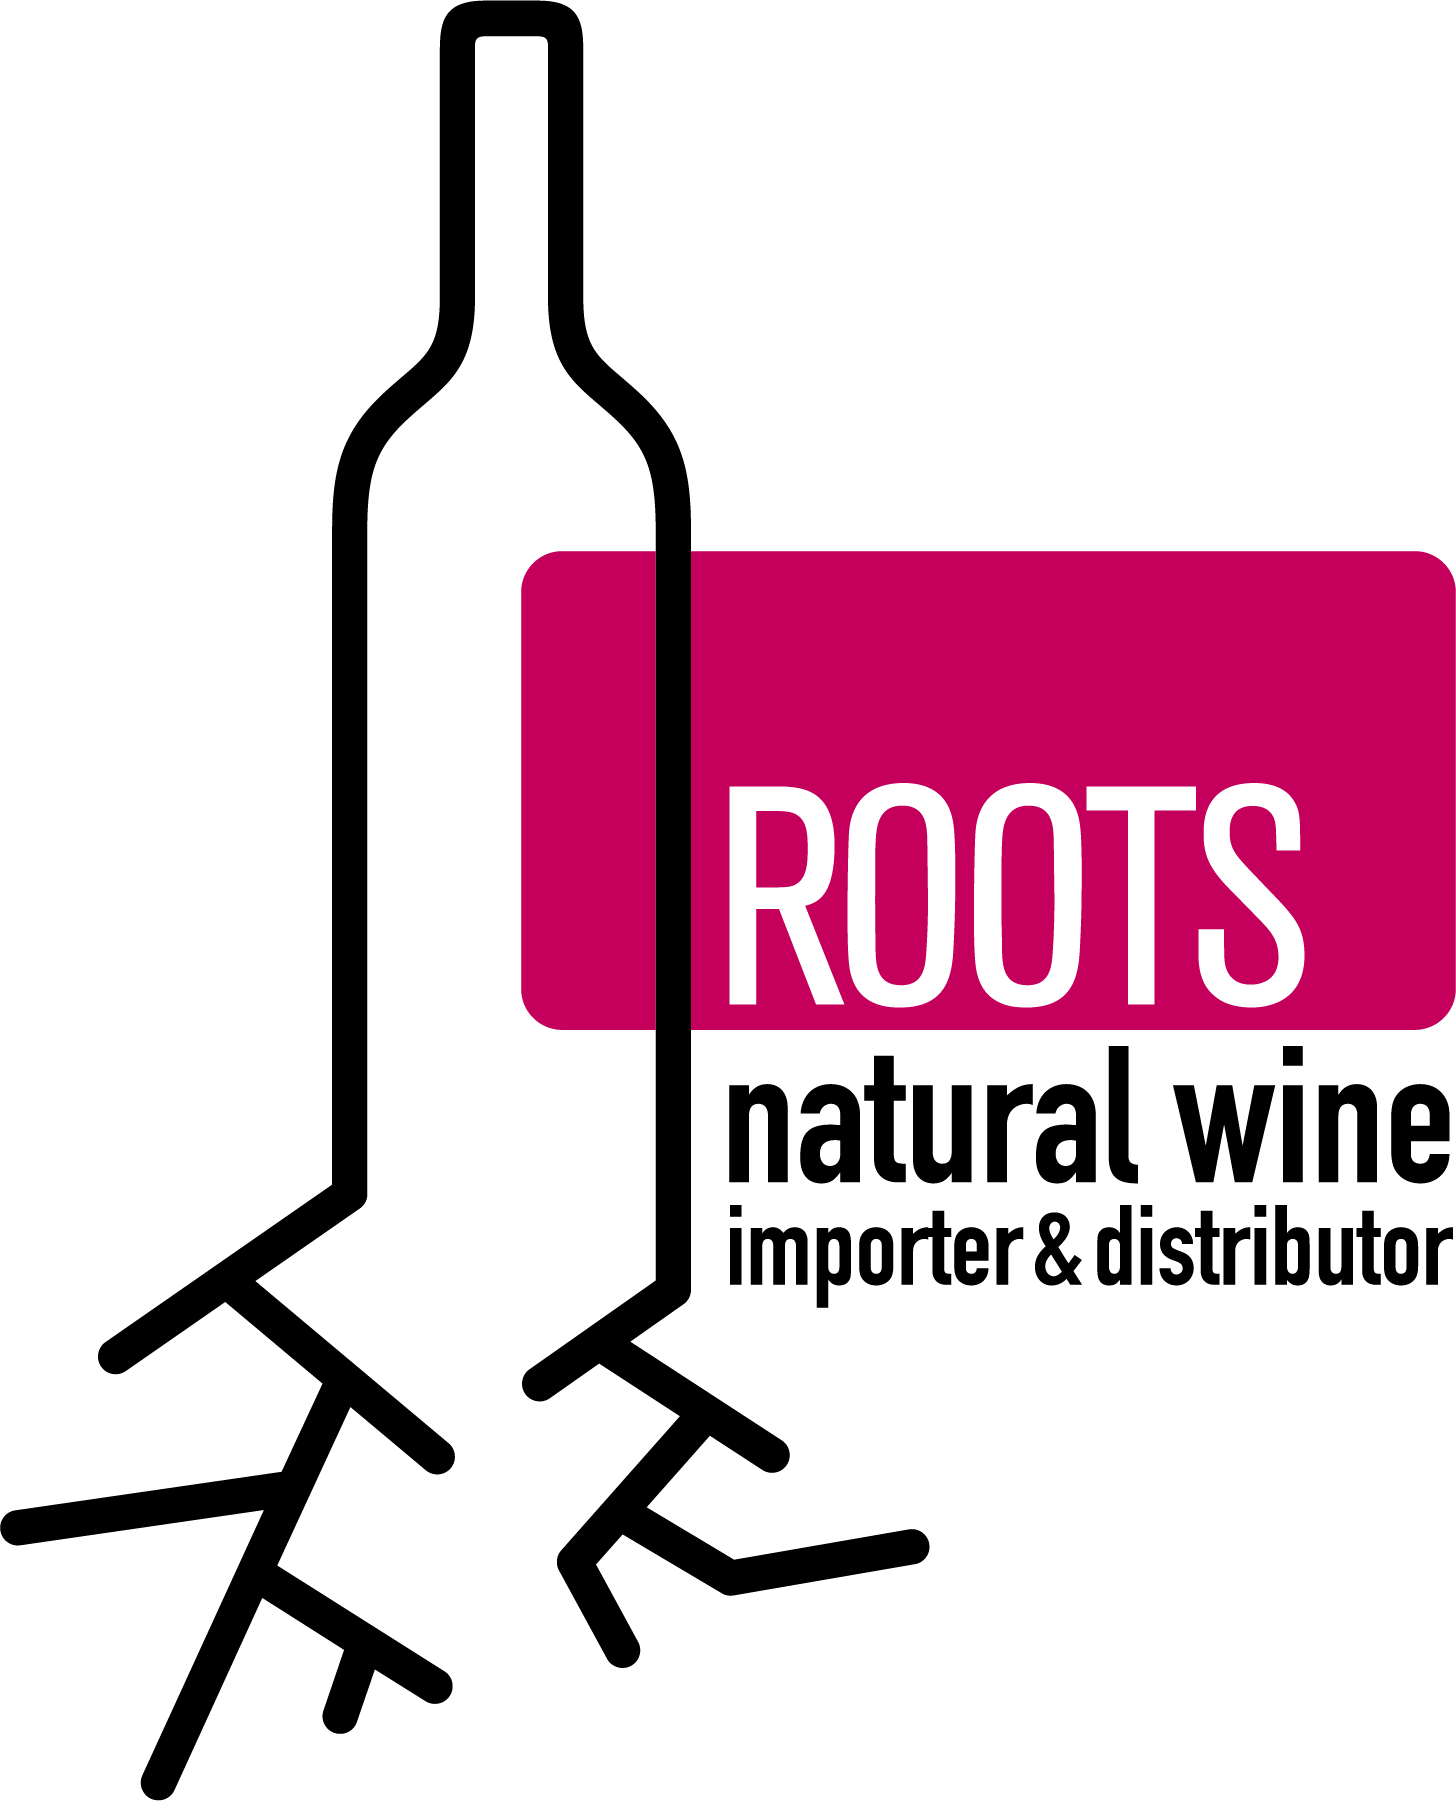 Roots – Natural Wine Distributor in Malta